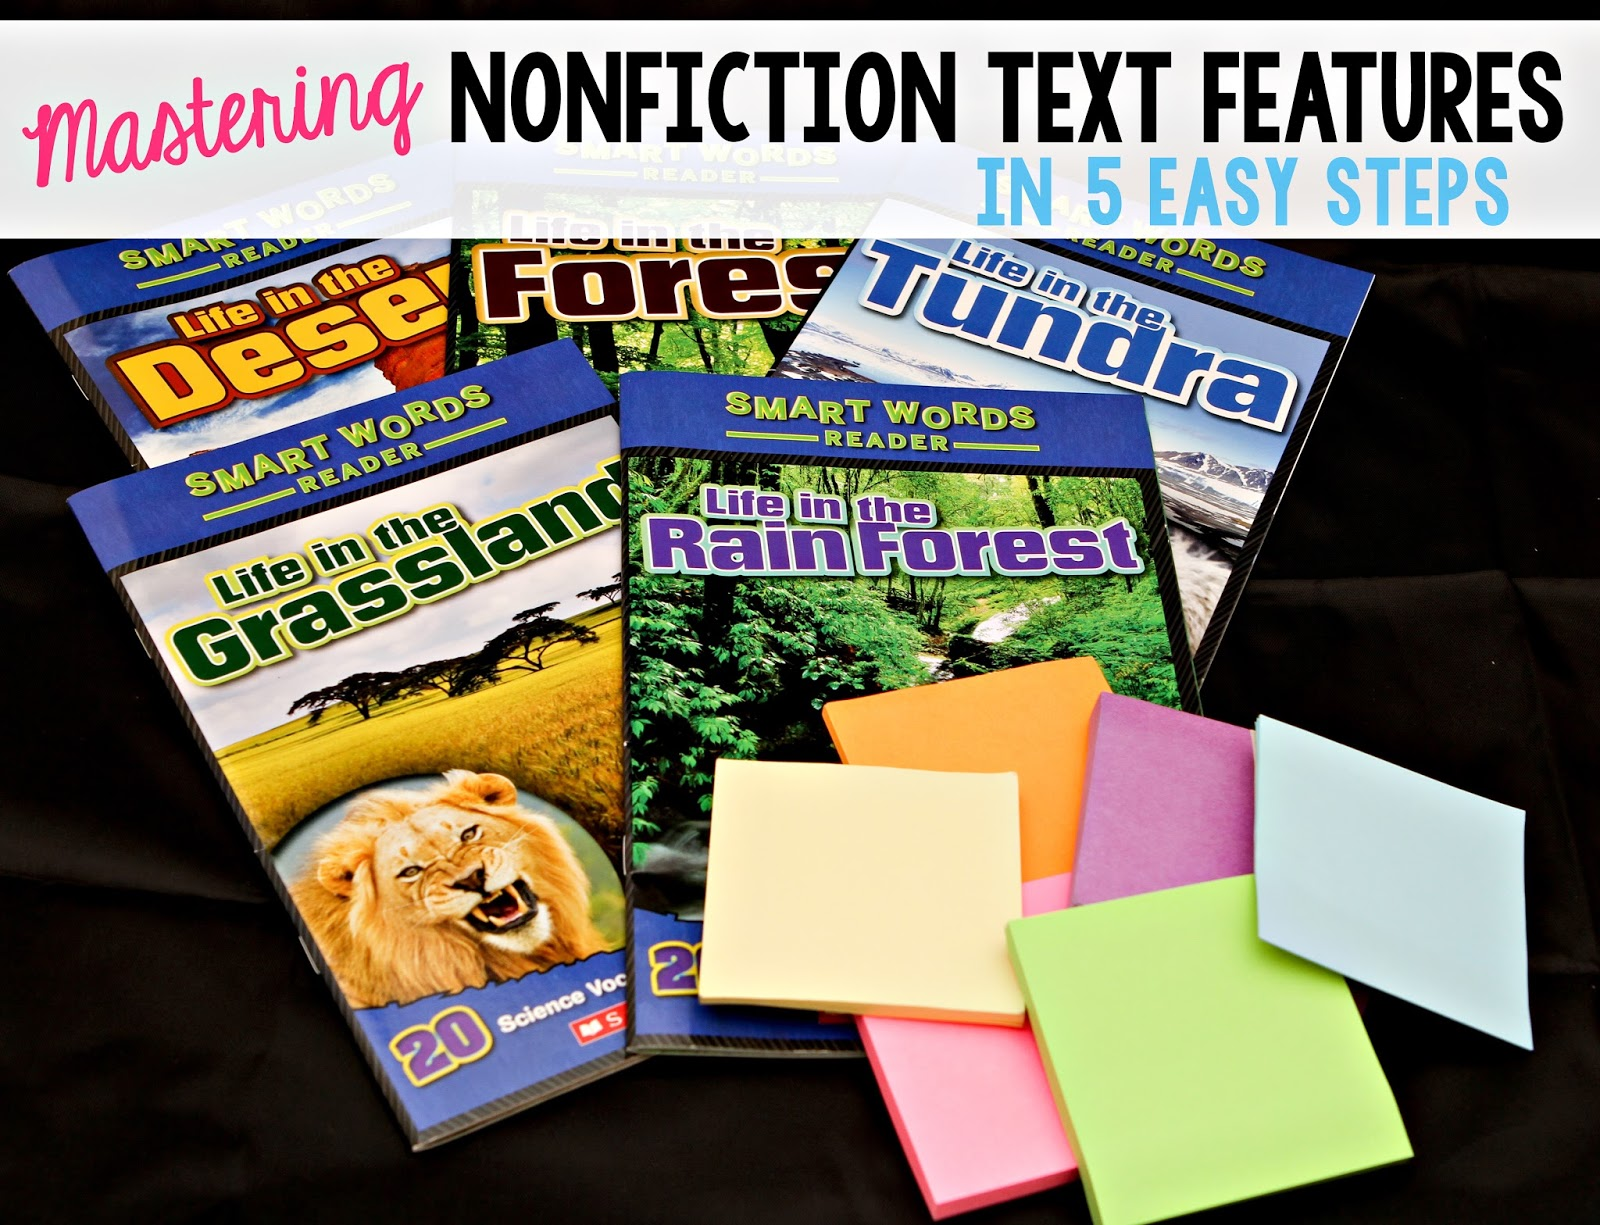 Mastering Nonfiction Text Features In 5 Easy Steps